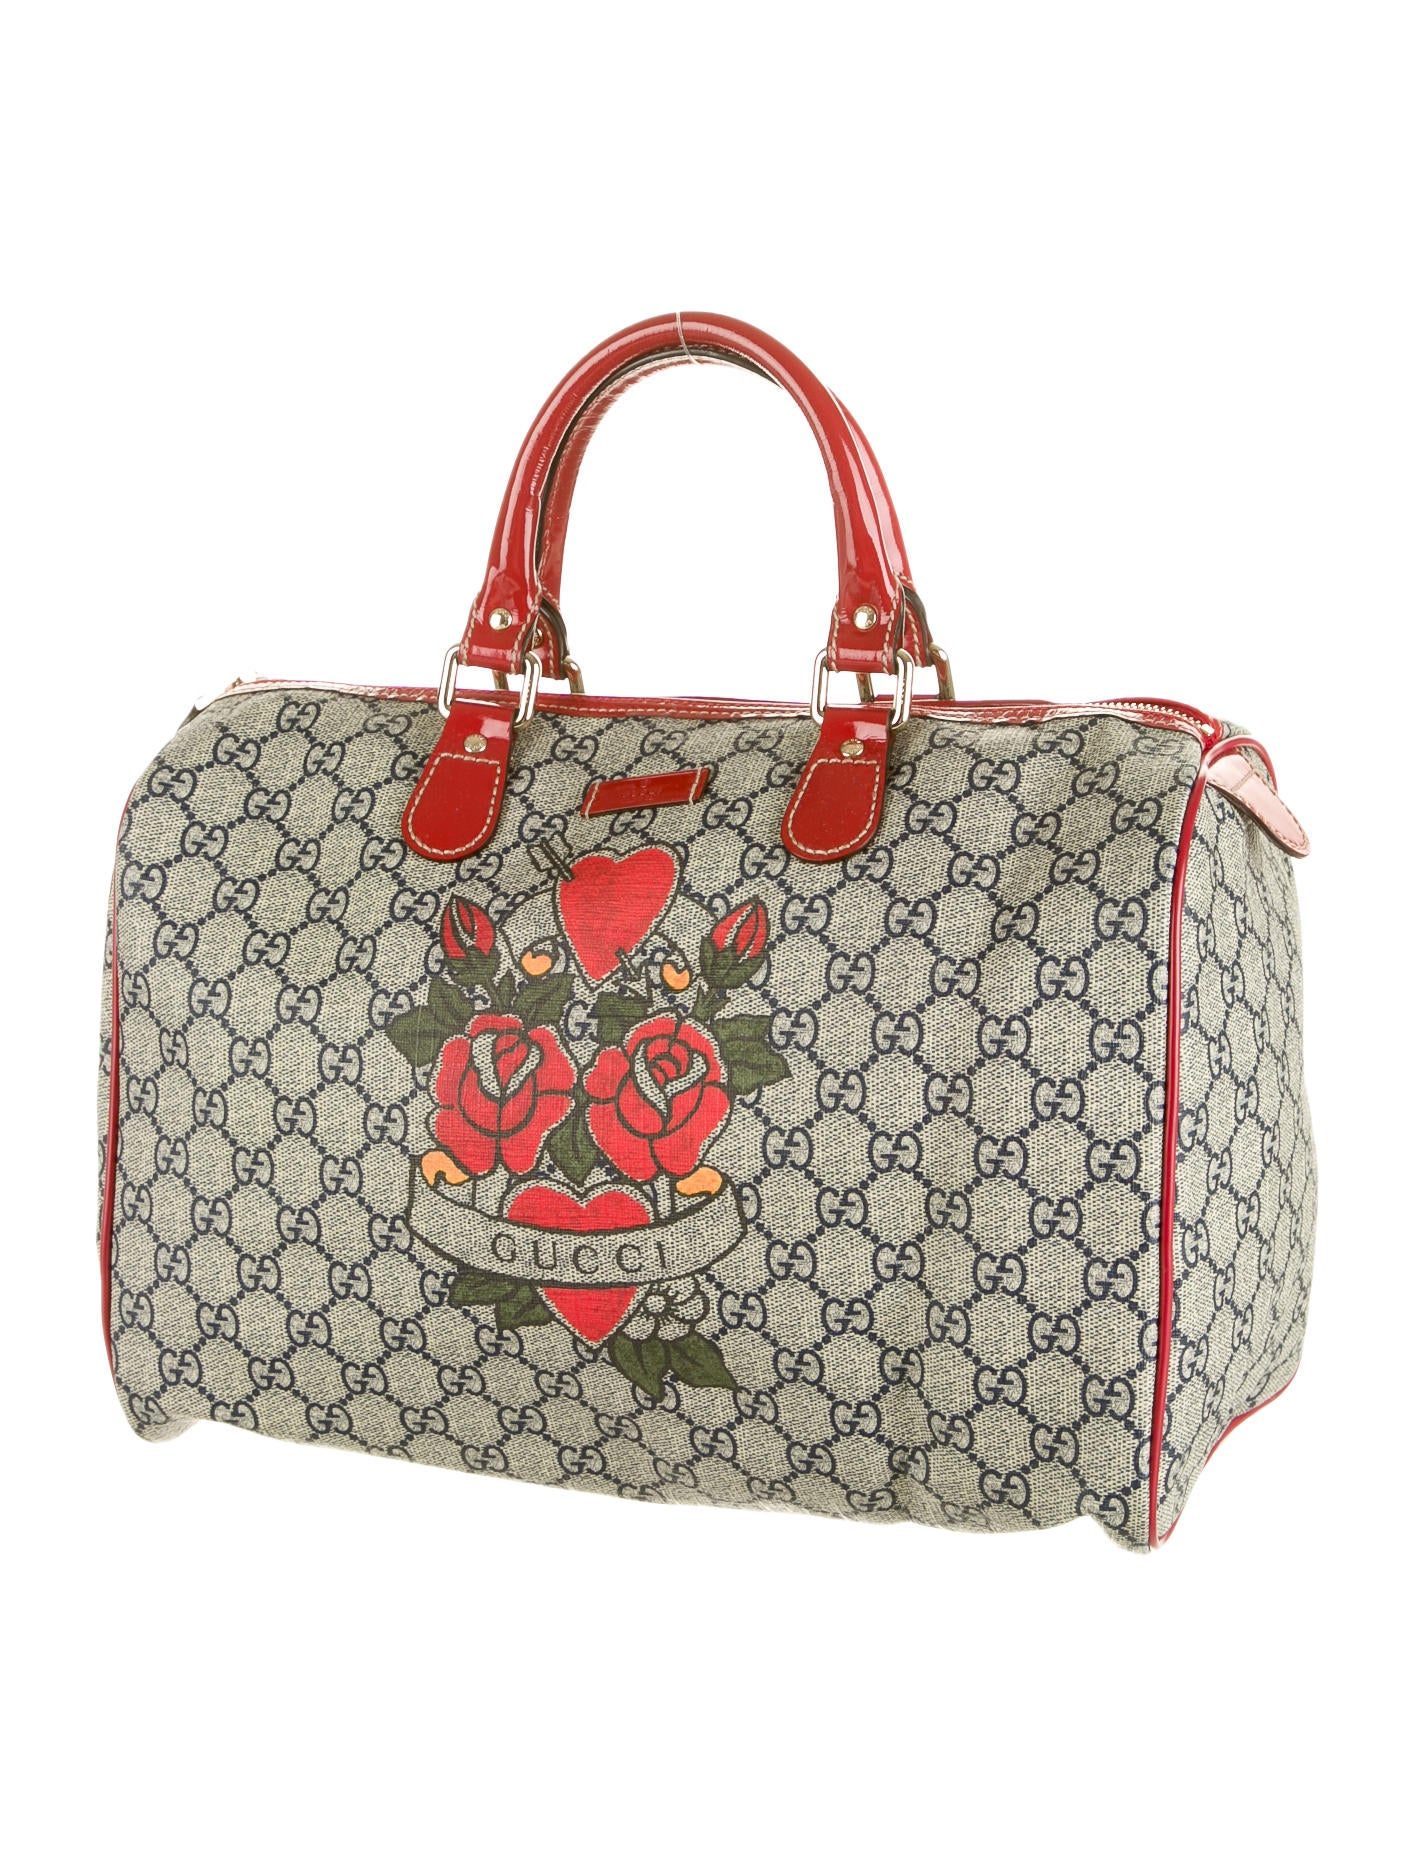 4dc655f2dae8c1 Gucci Joy Boston Bag Tattoo | Stanford Center for Opportunity Policy ...